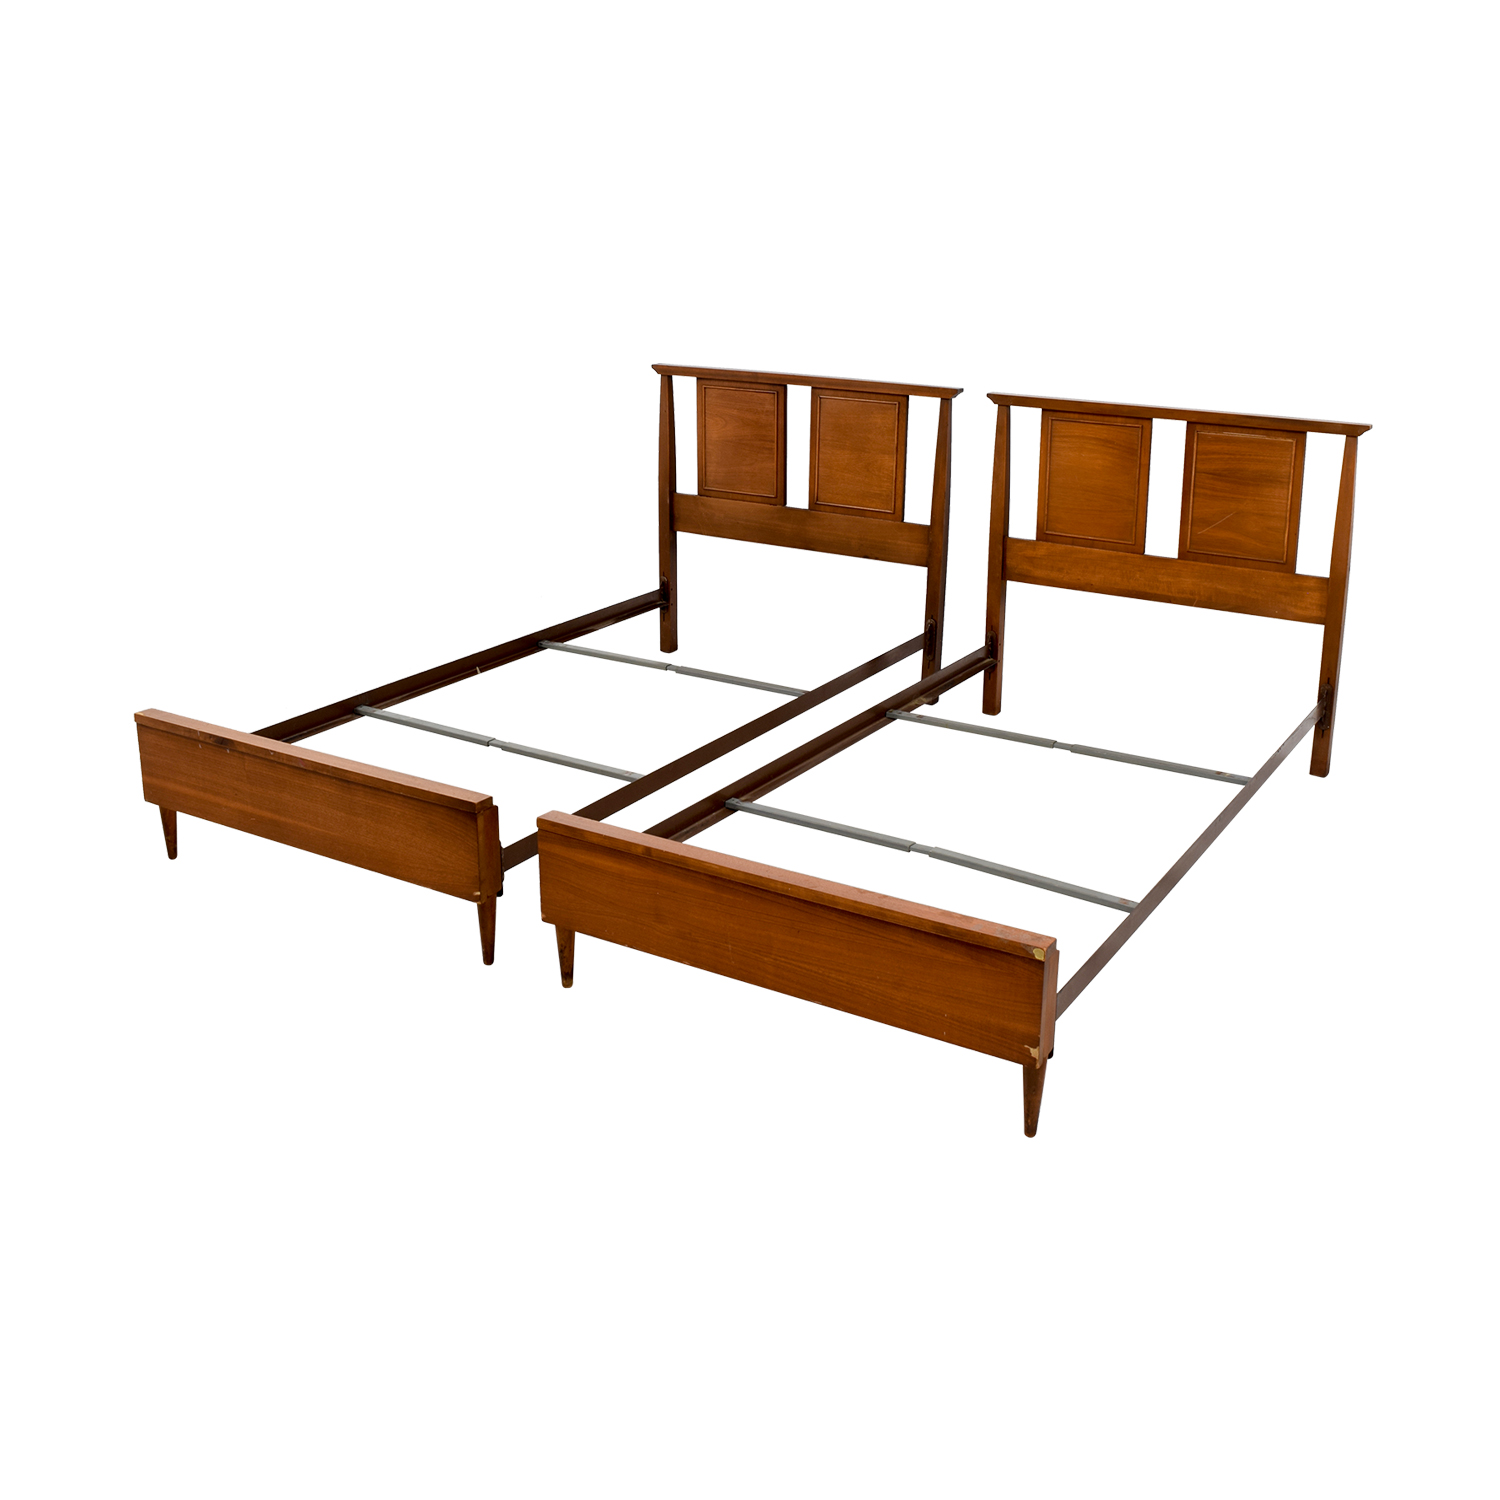 Seaman S Twin Bed Frames